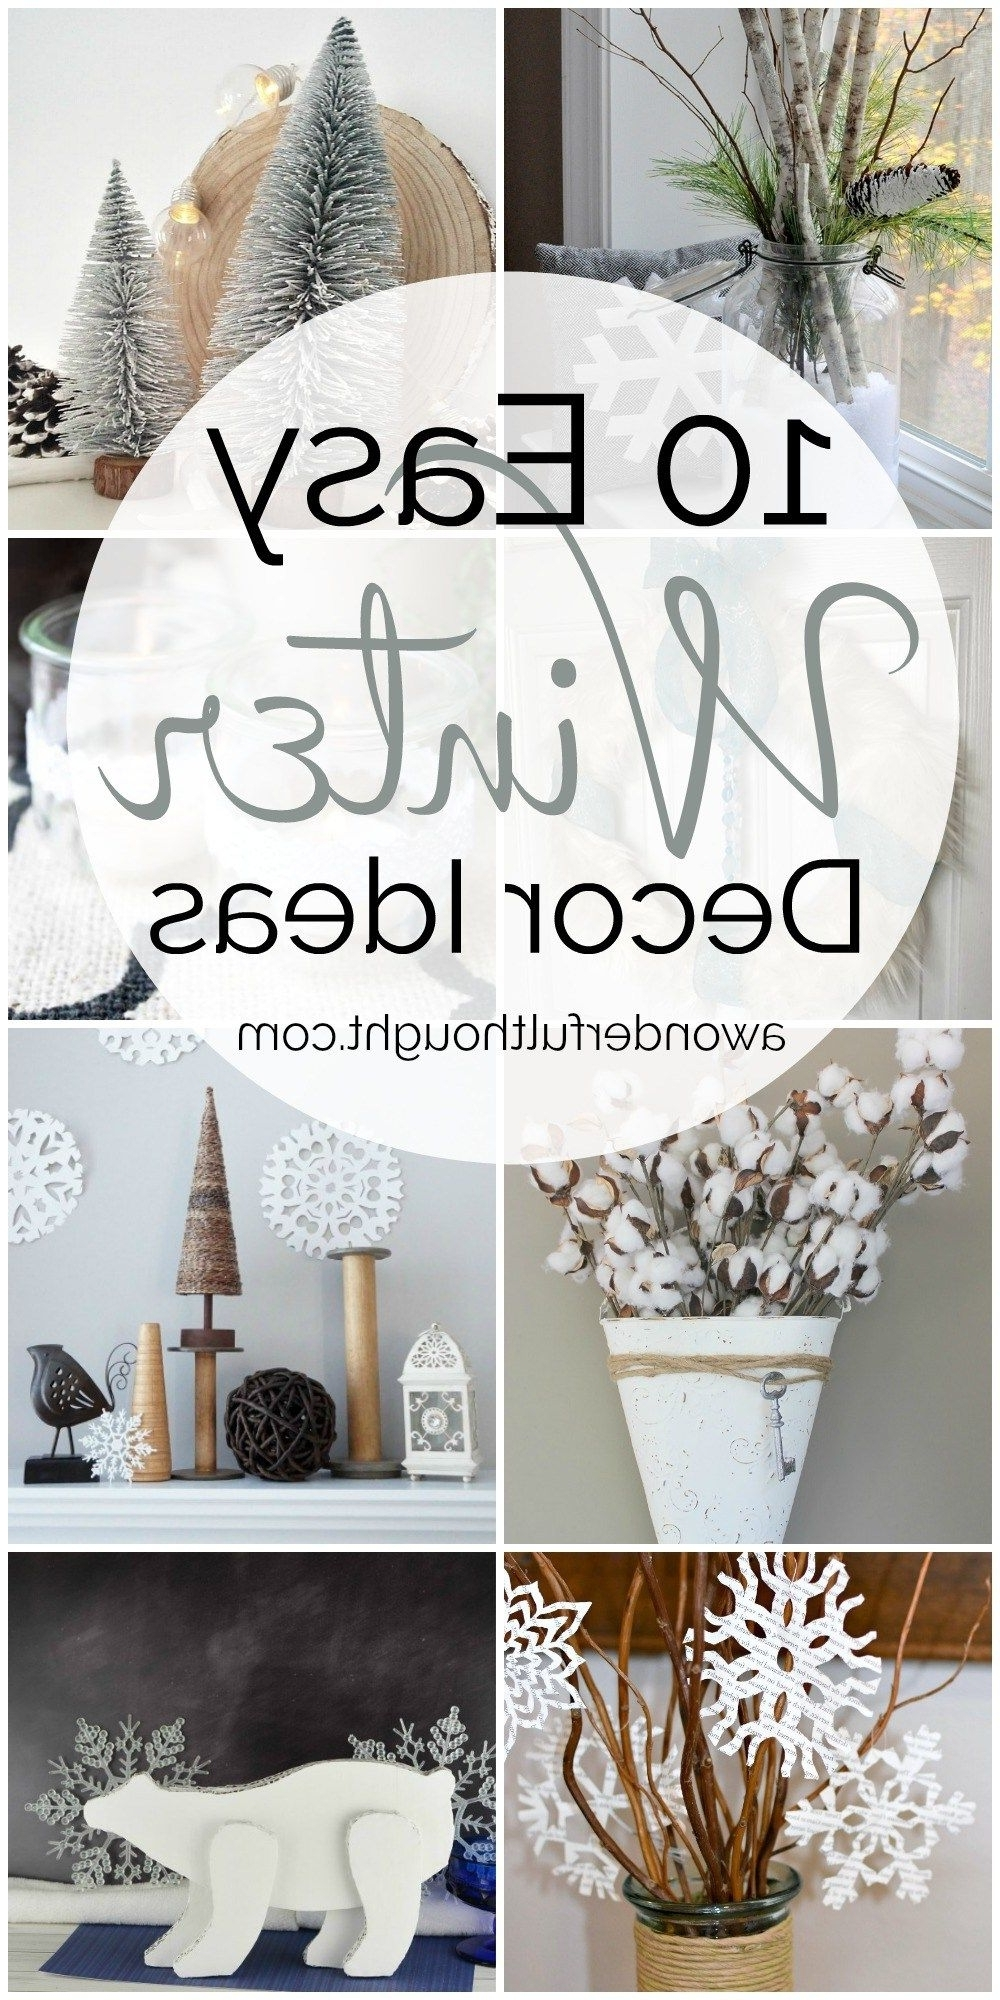 10 Easy Winter Decor Ideas Mm 186 A Wonderful Thought